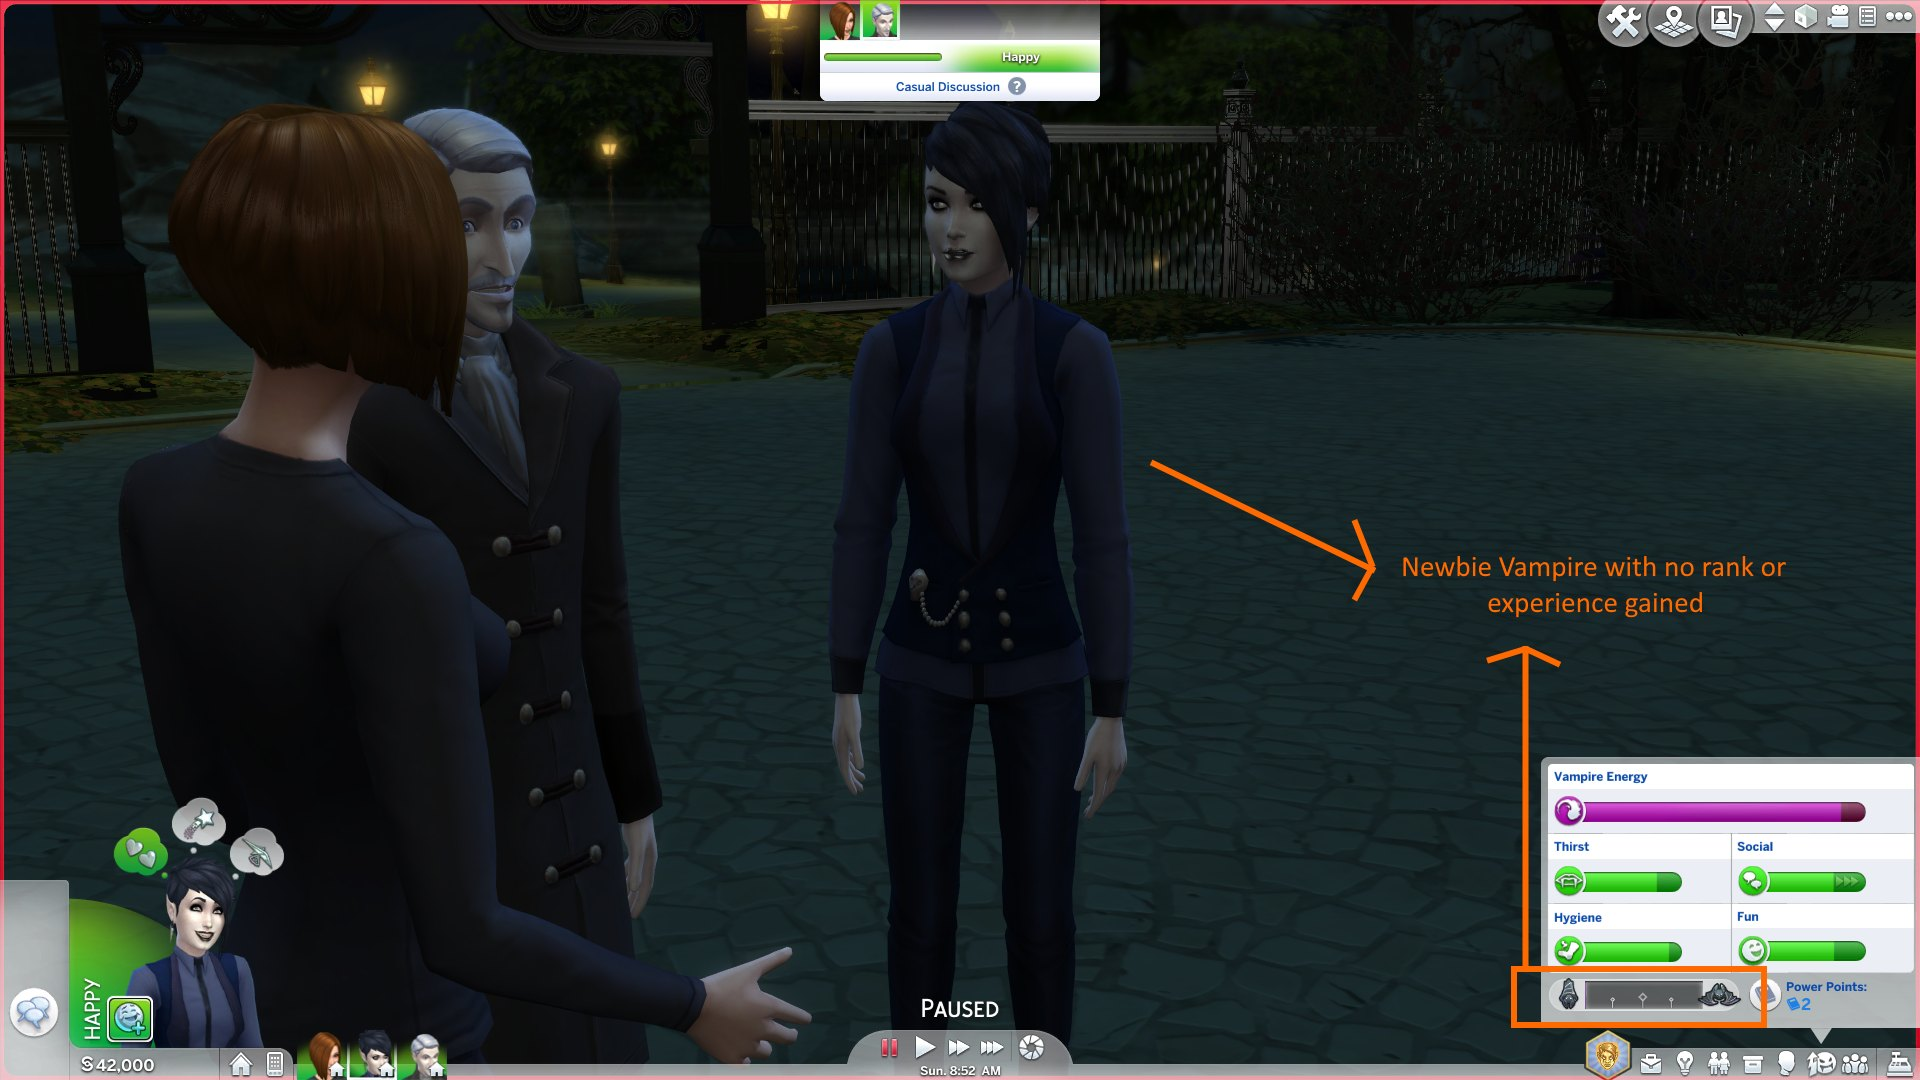 Mod The Sims - Vampire XP Gain Mods - Two Types of Mods